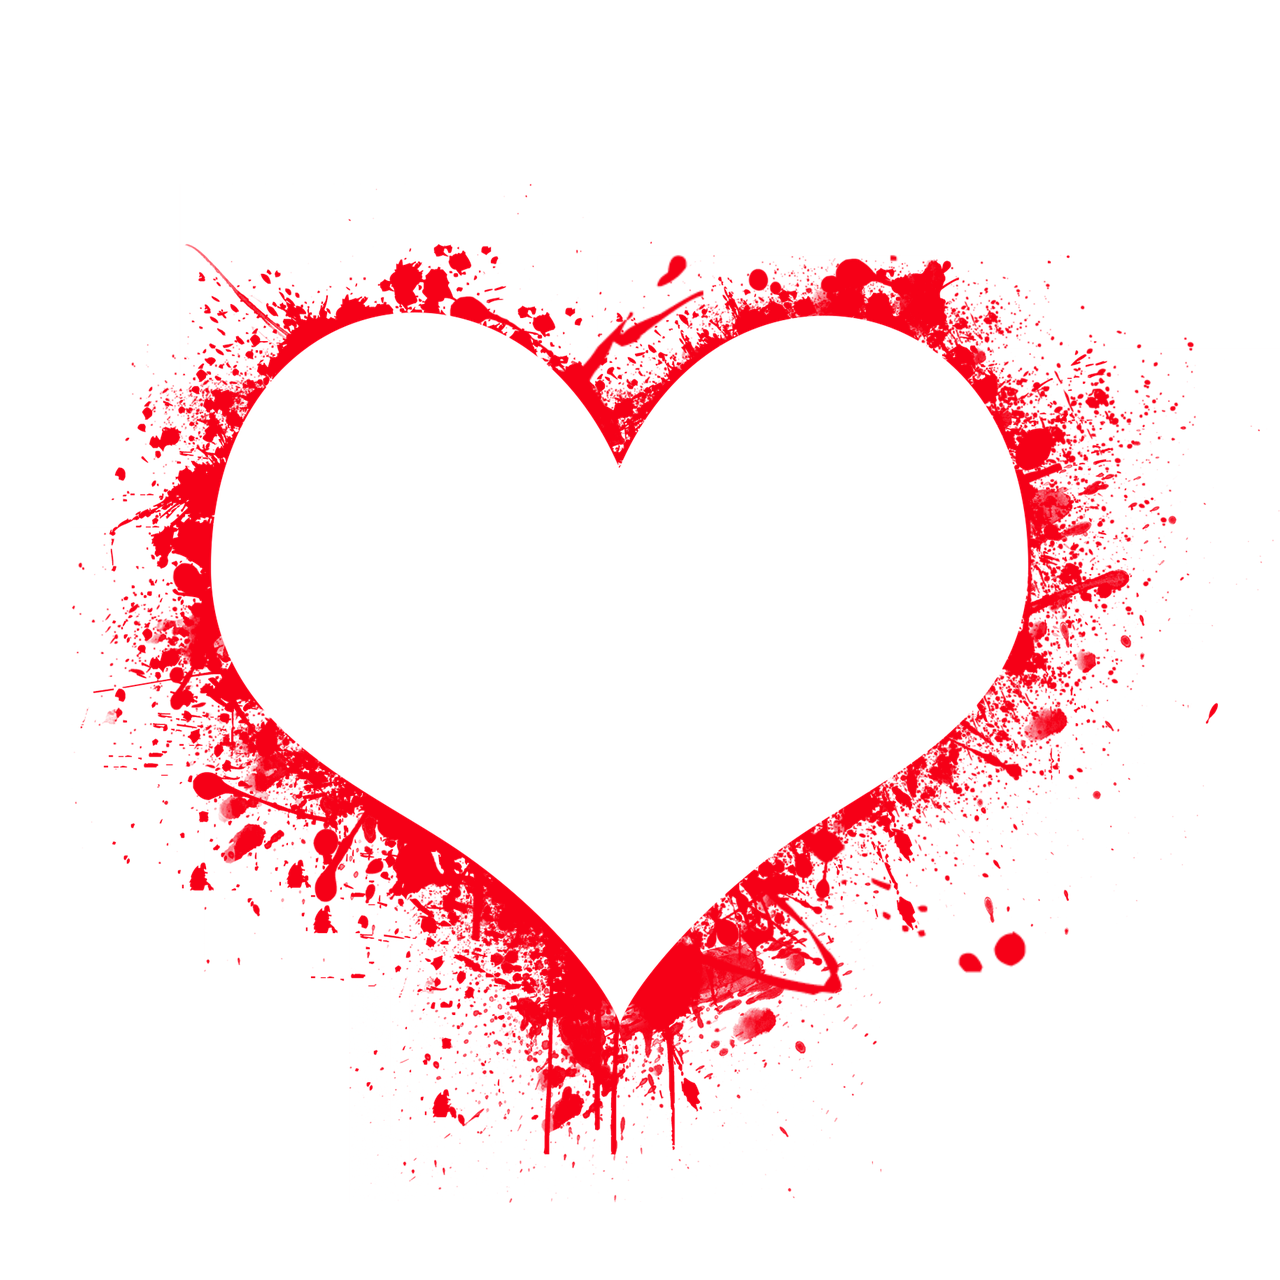 heart love red valentine's - free image on pixabay  pixabay